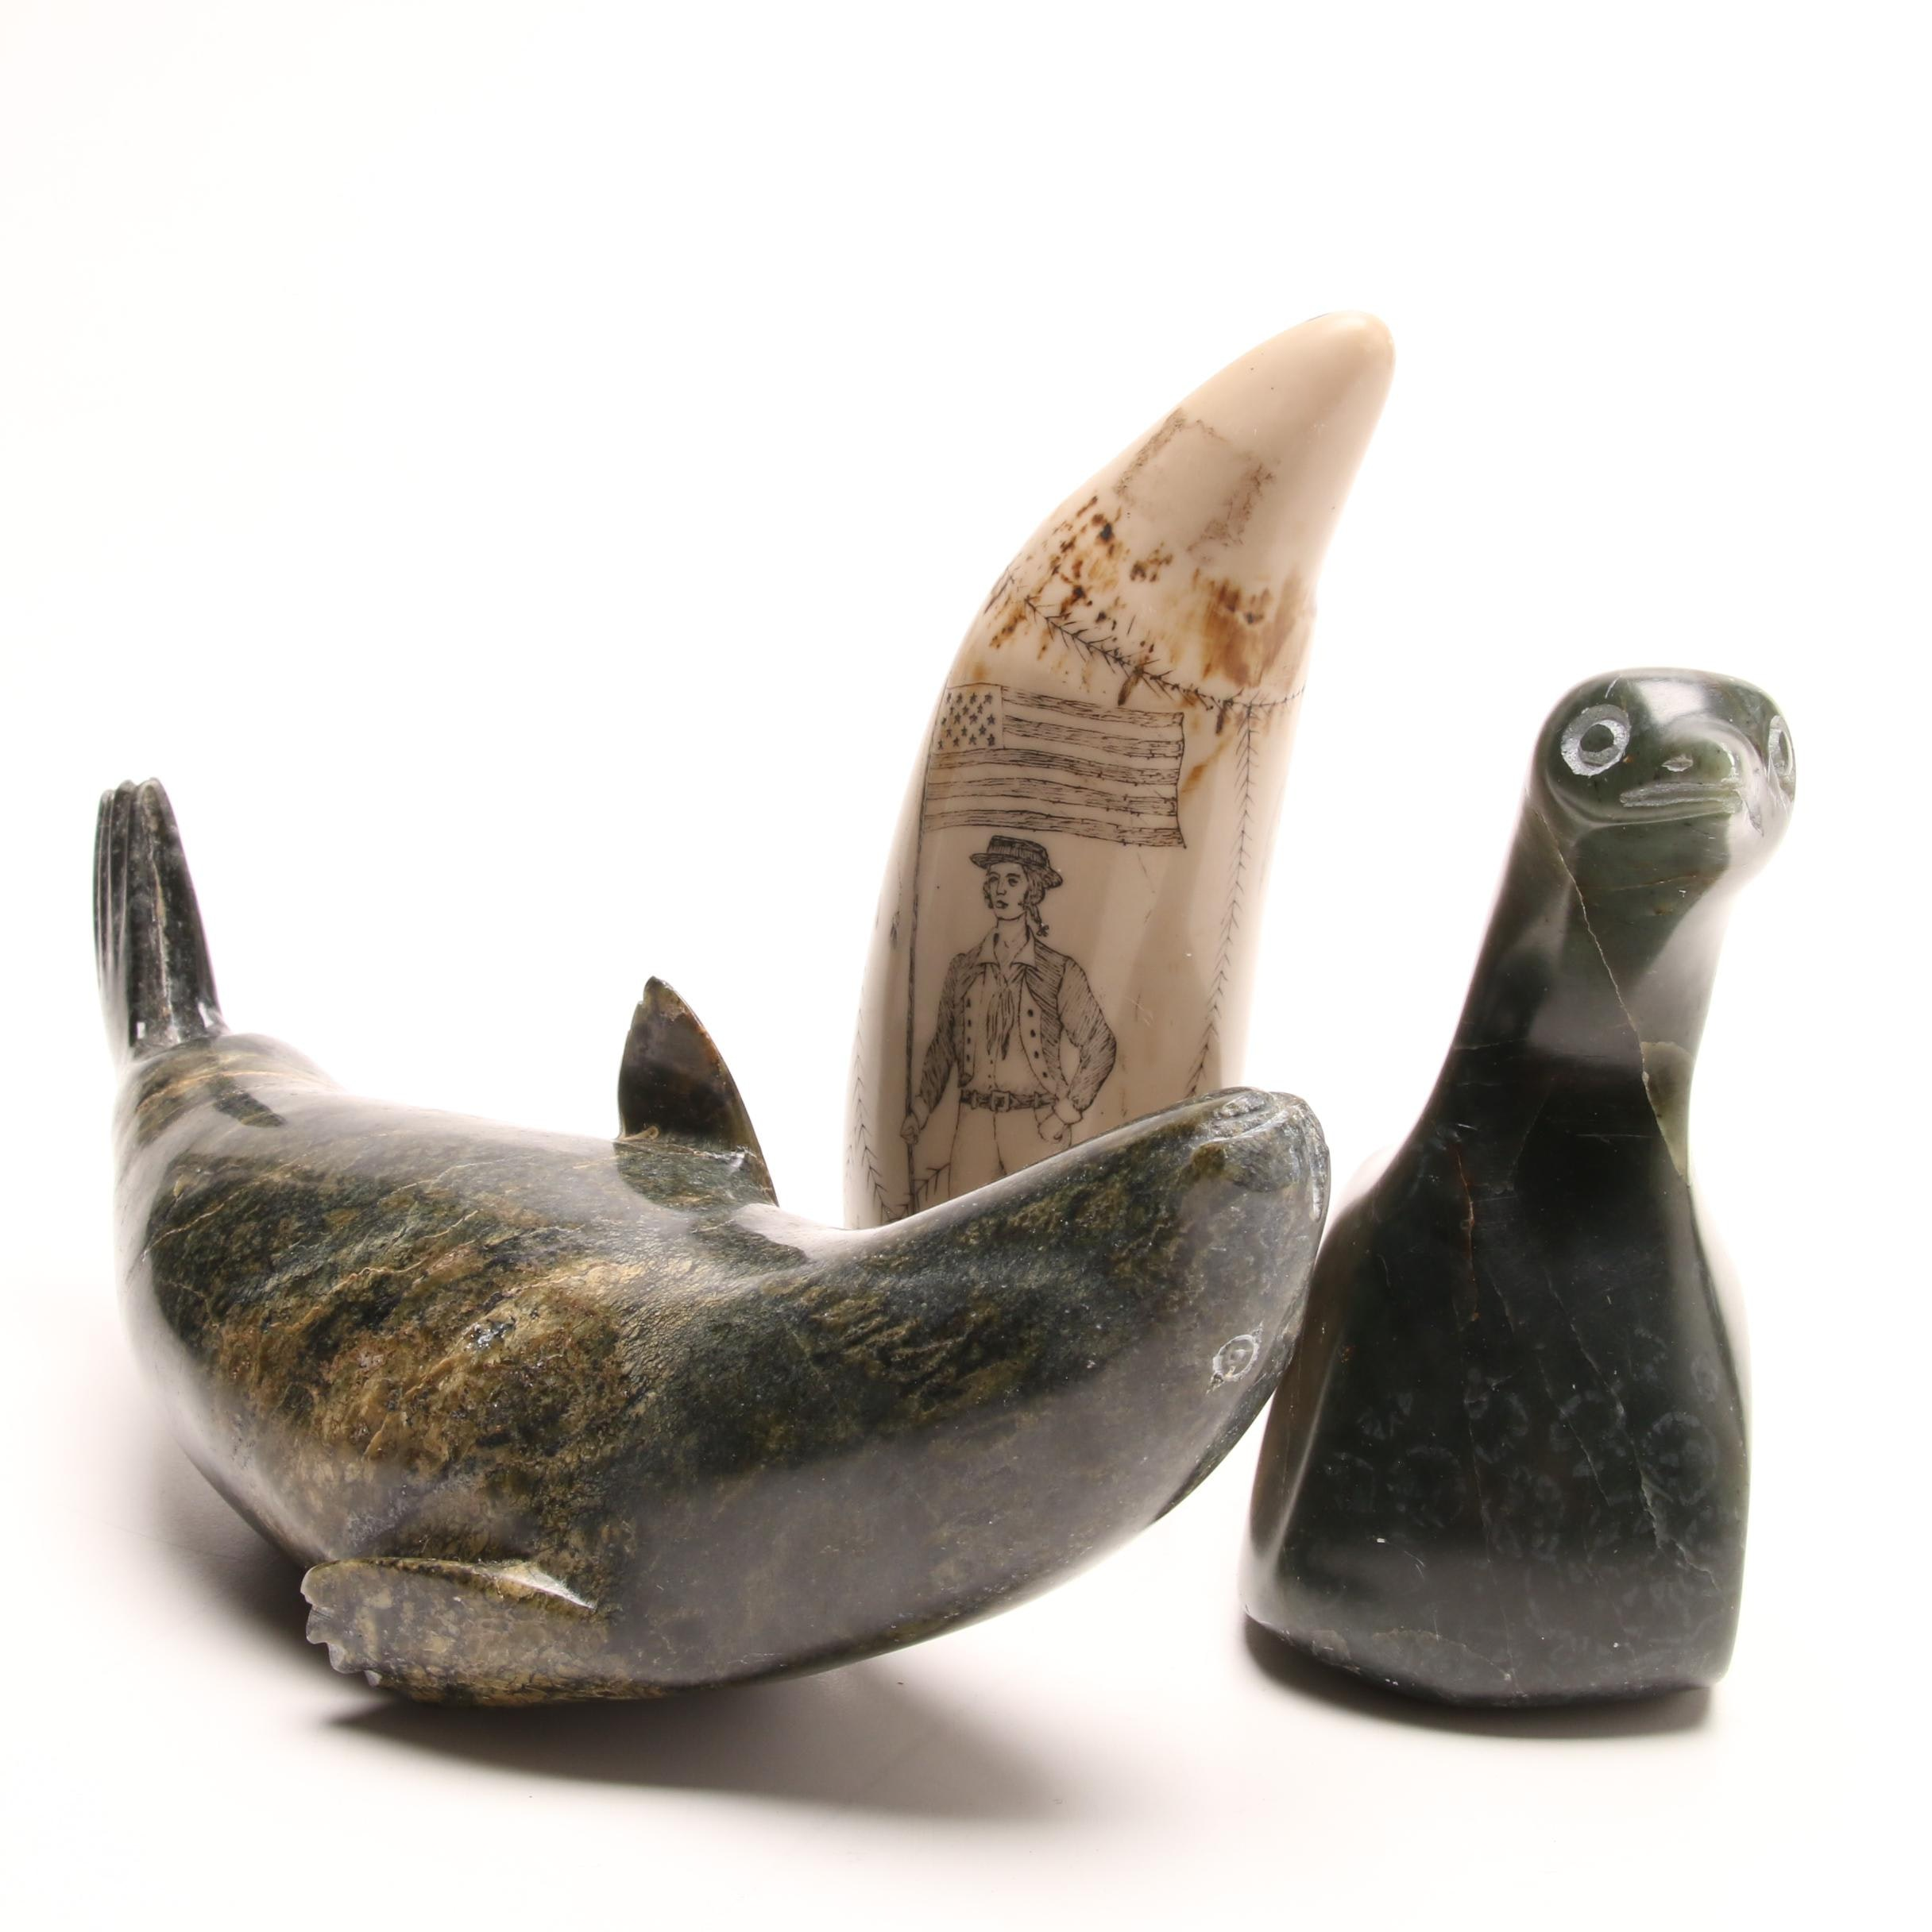 Inuit Totemic Animal Carvings and Scrimshaw